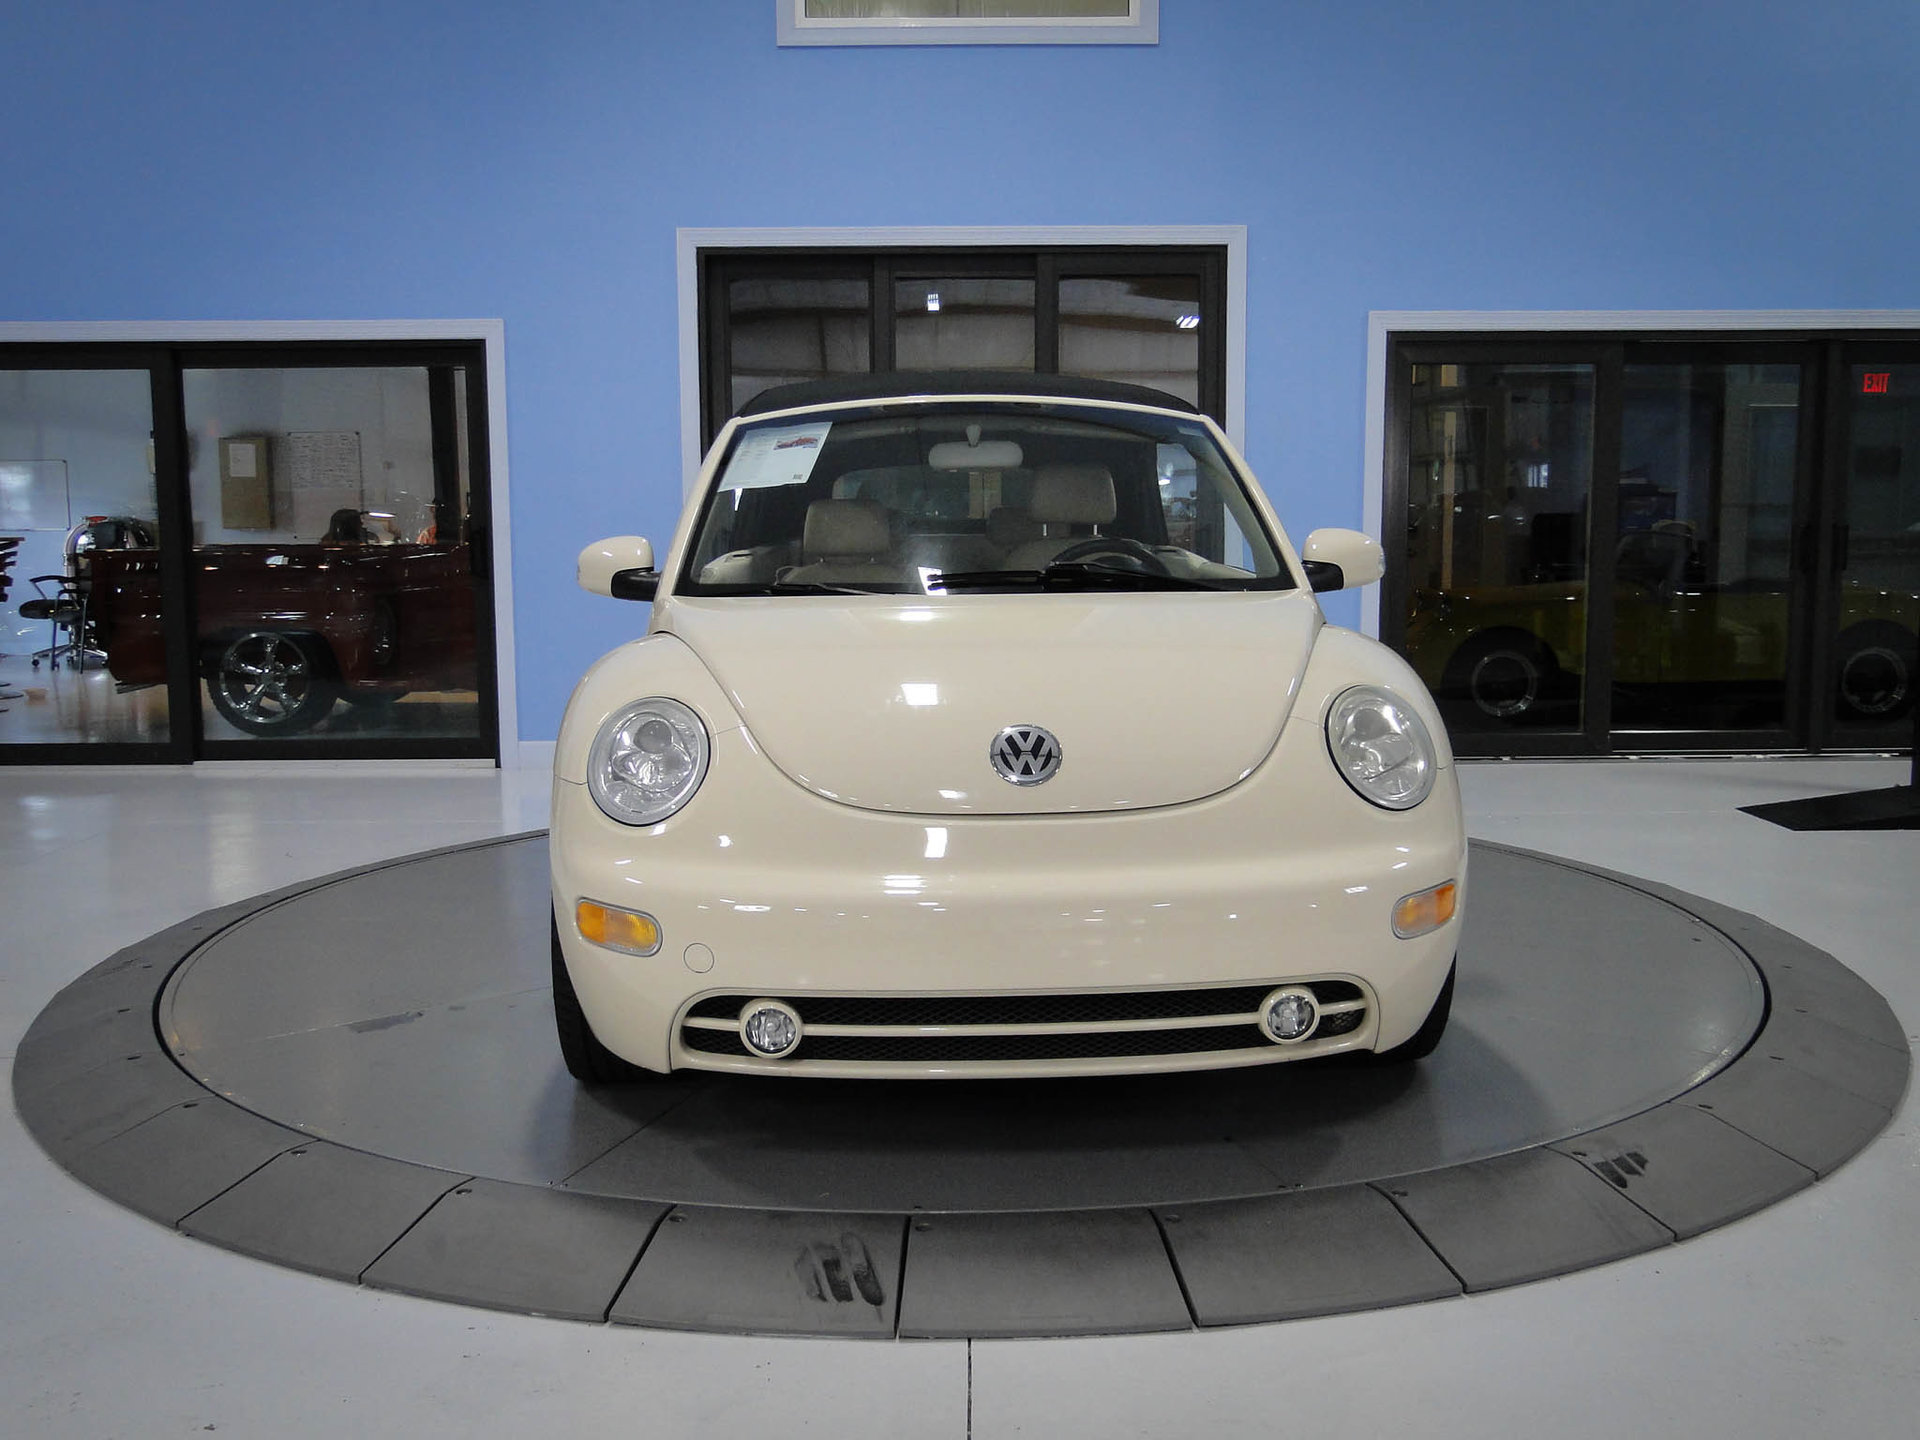 Volkswagen beetle classic cars used cars for sale in tampa jpg 1920x1440 New  beetle manual